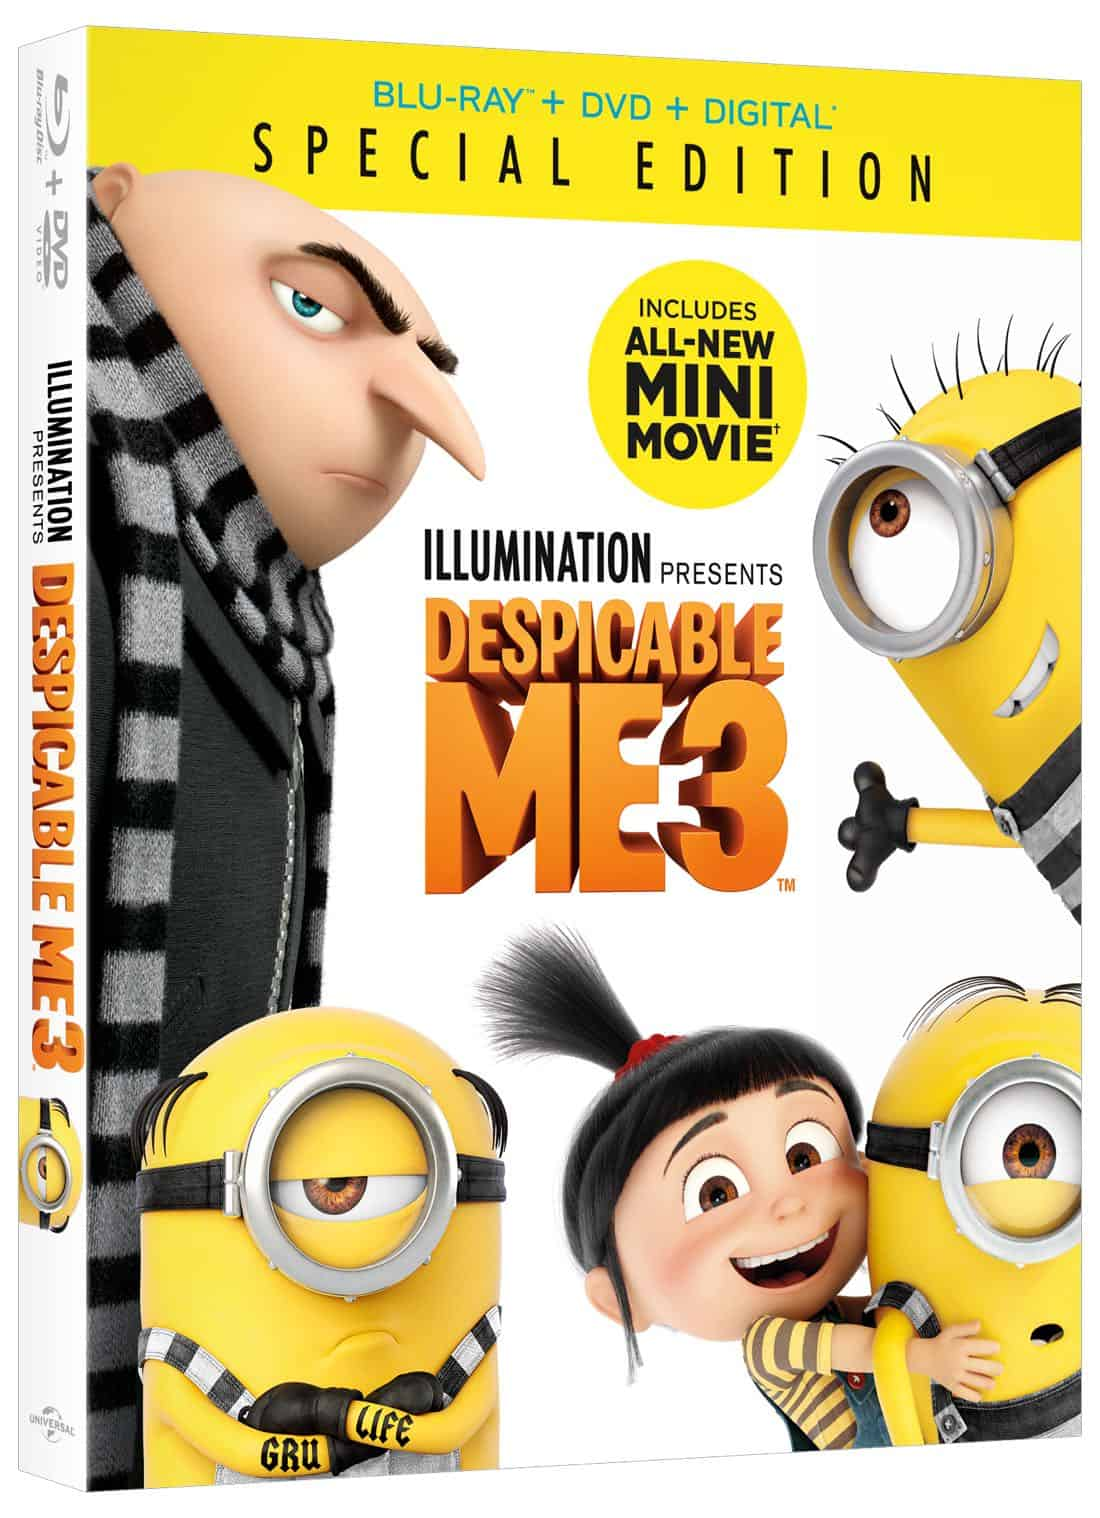 Despicable-Me-3-Bluray-DVD-Combo-Pack